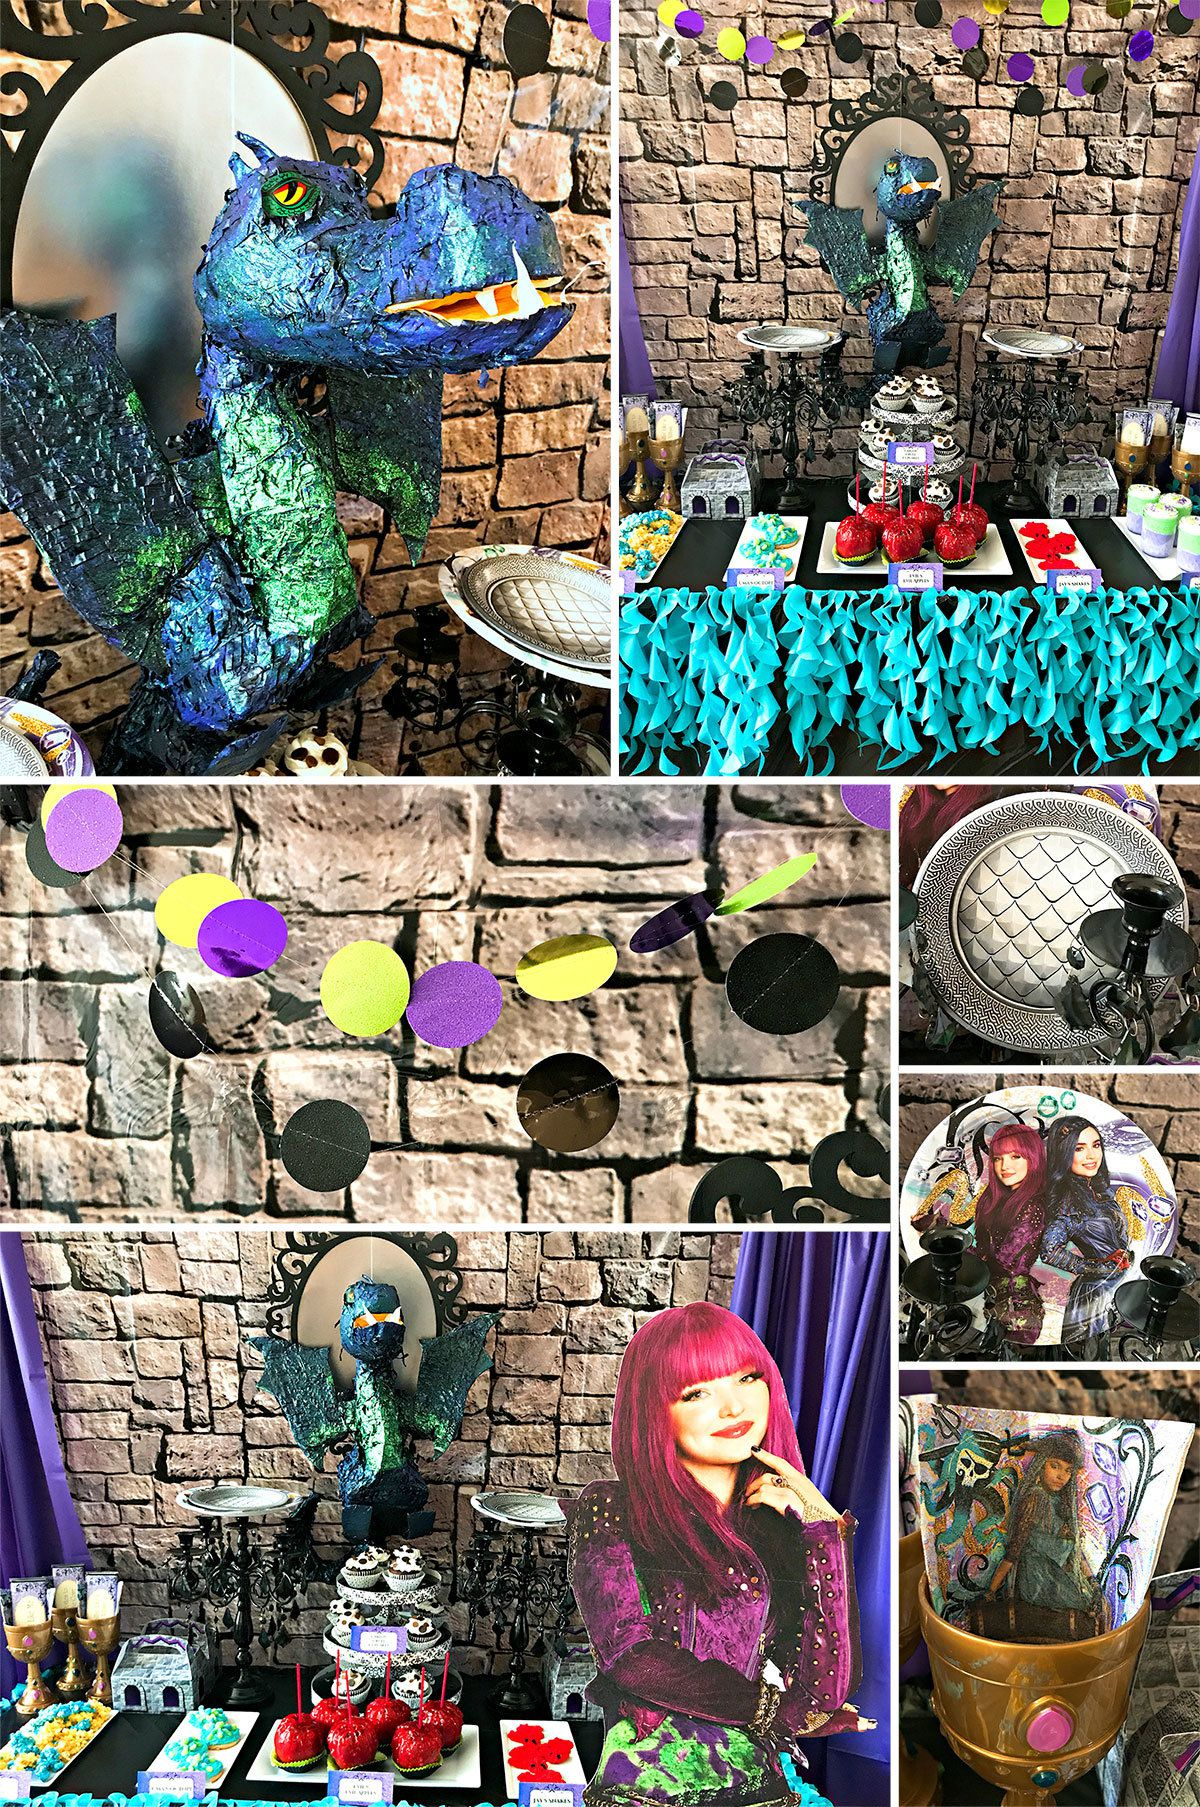 Descendants Birthday Party Ideas - Decorations